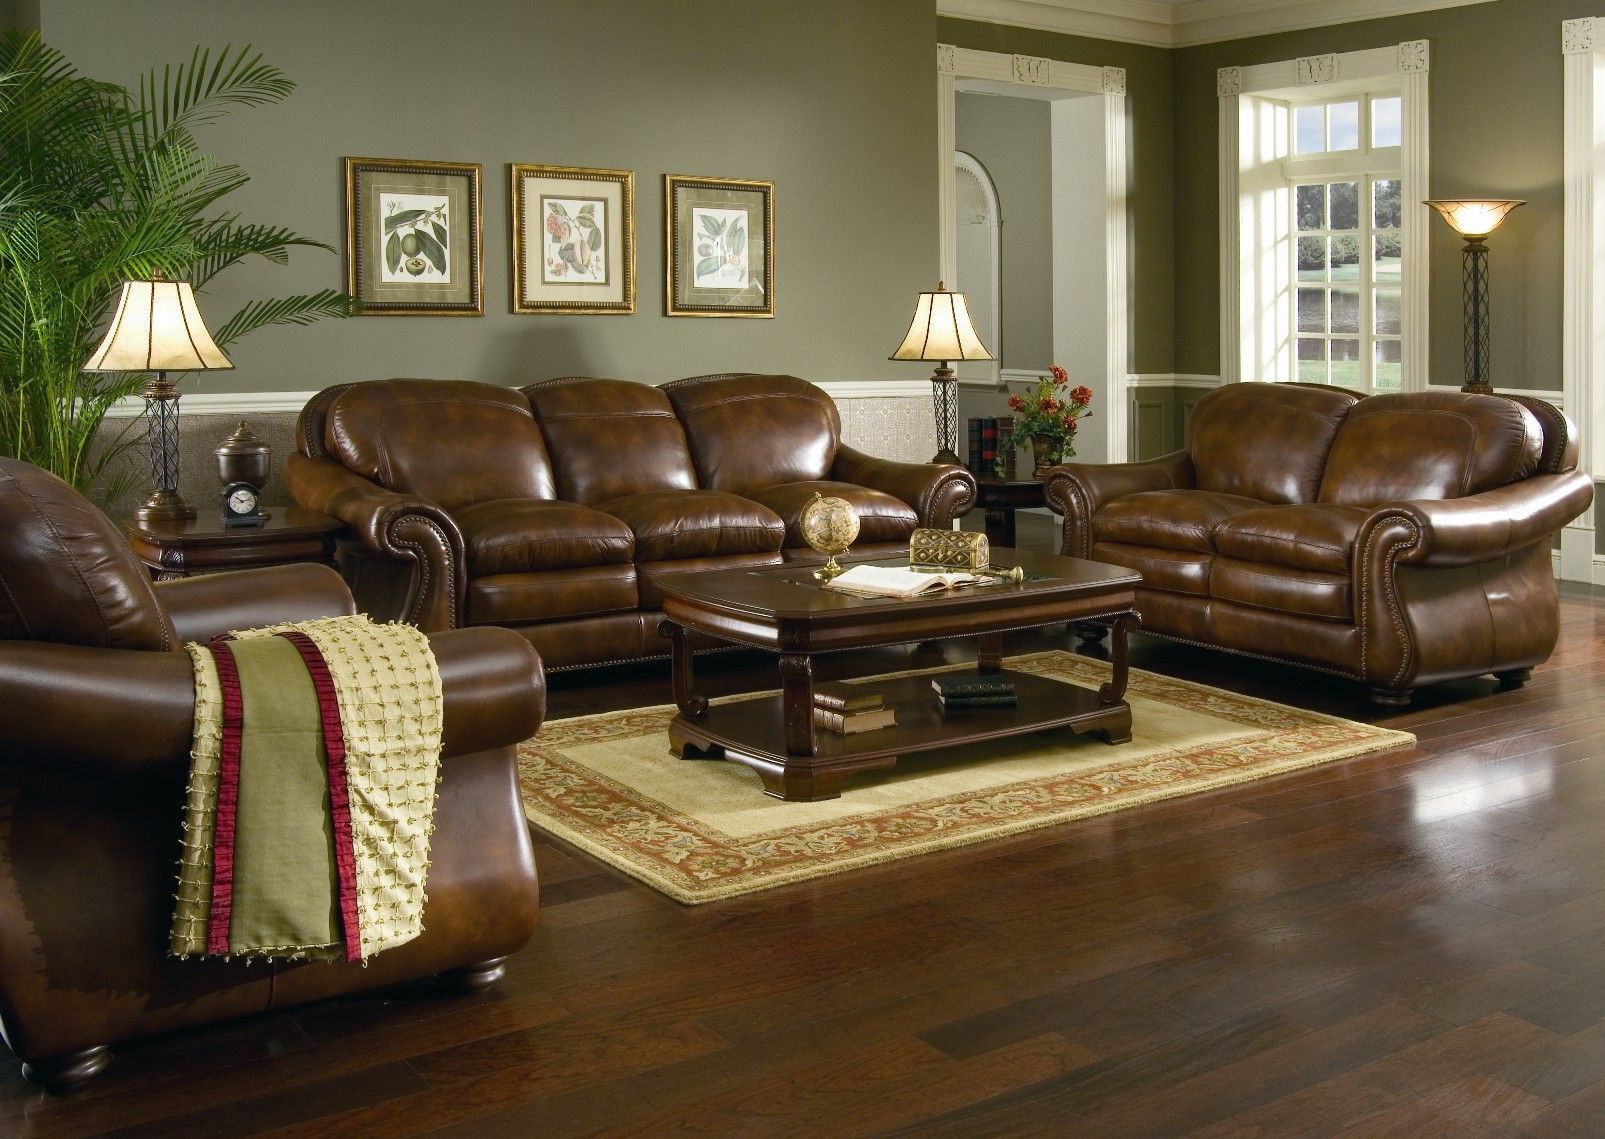 Living Room Decor With Brown Furniture best 25+ leather living rooms ideas on pinterest | leather living